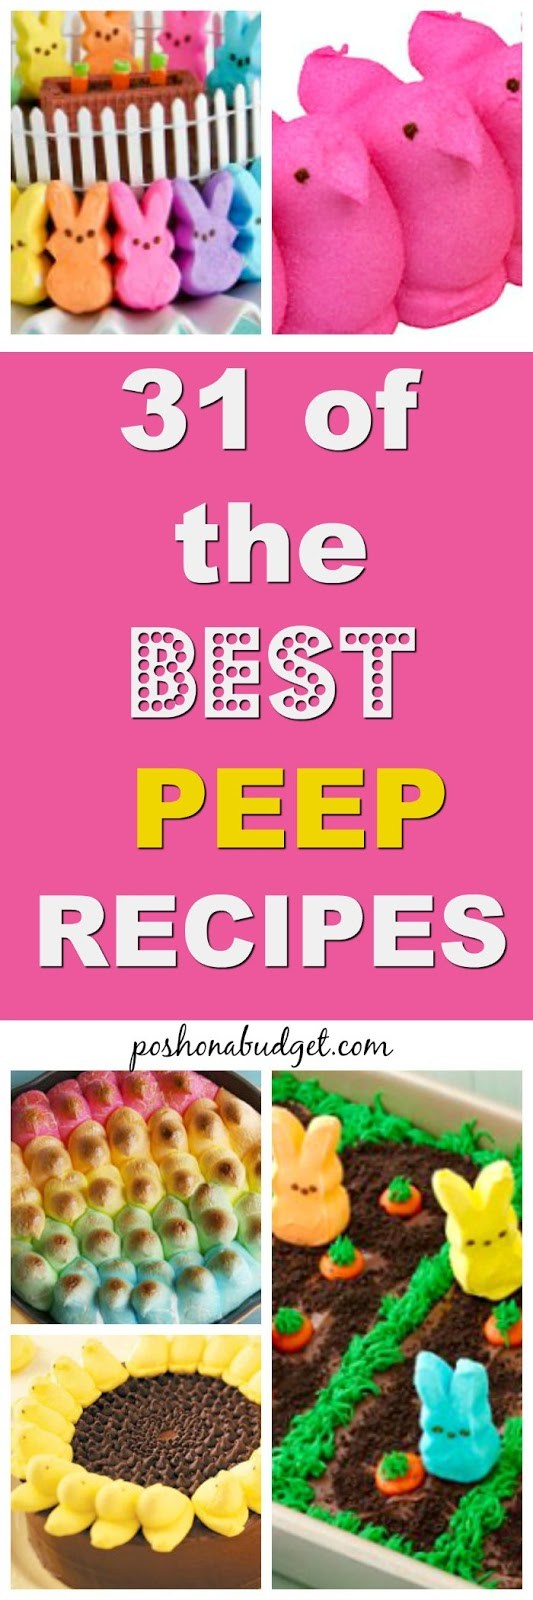 31 of the BEST PEEP RECIPES